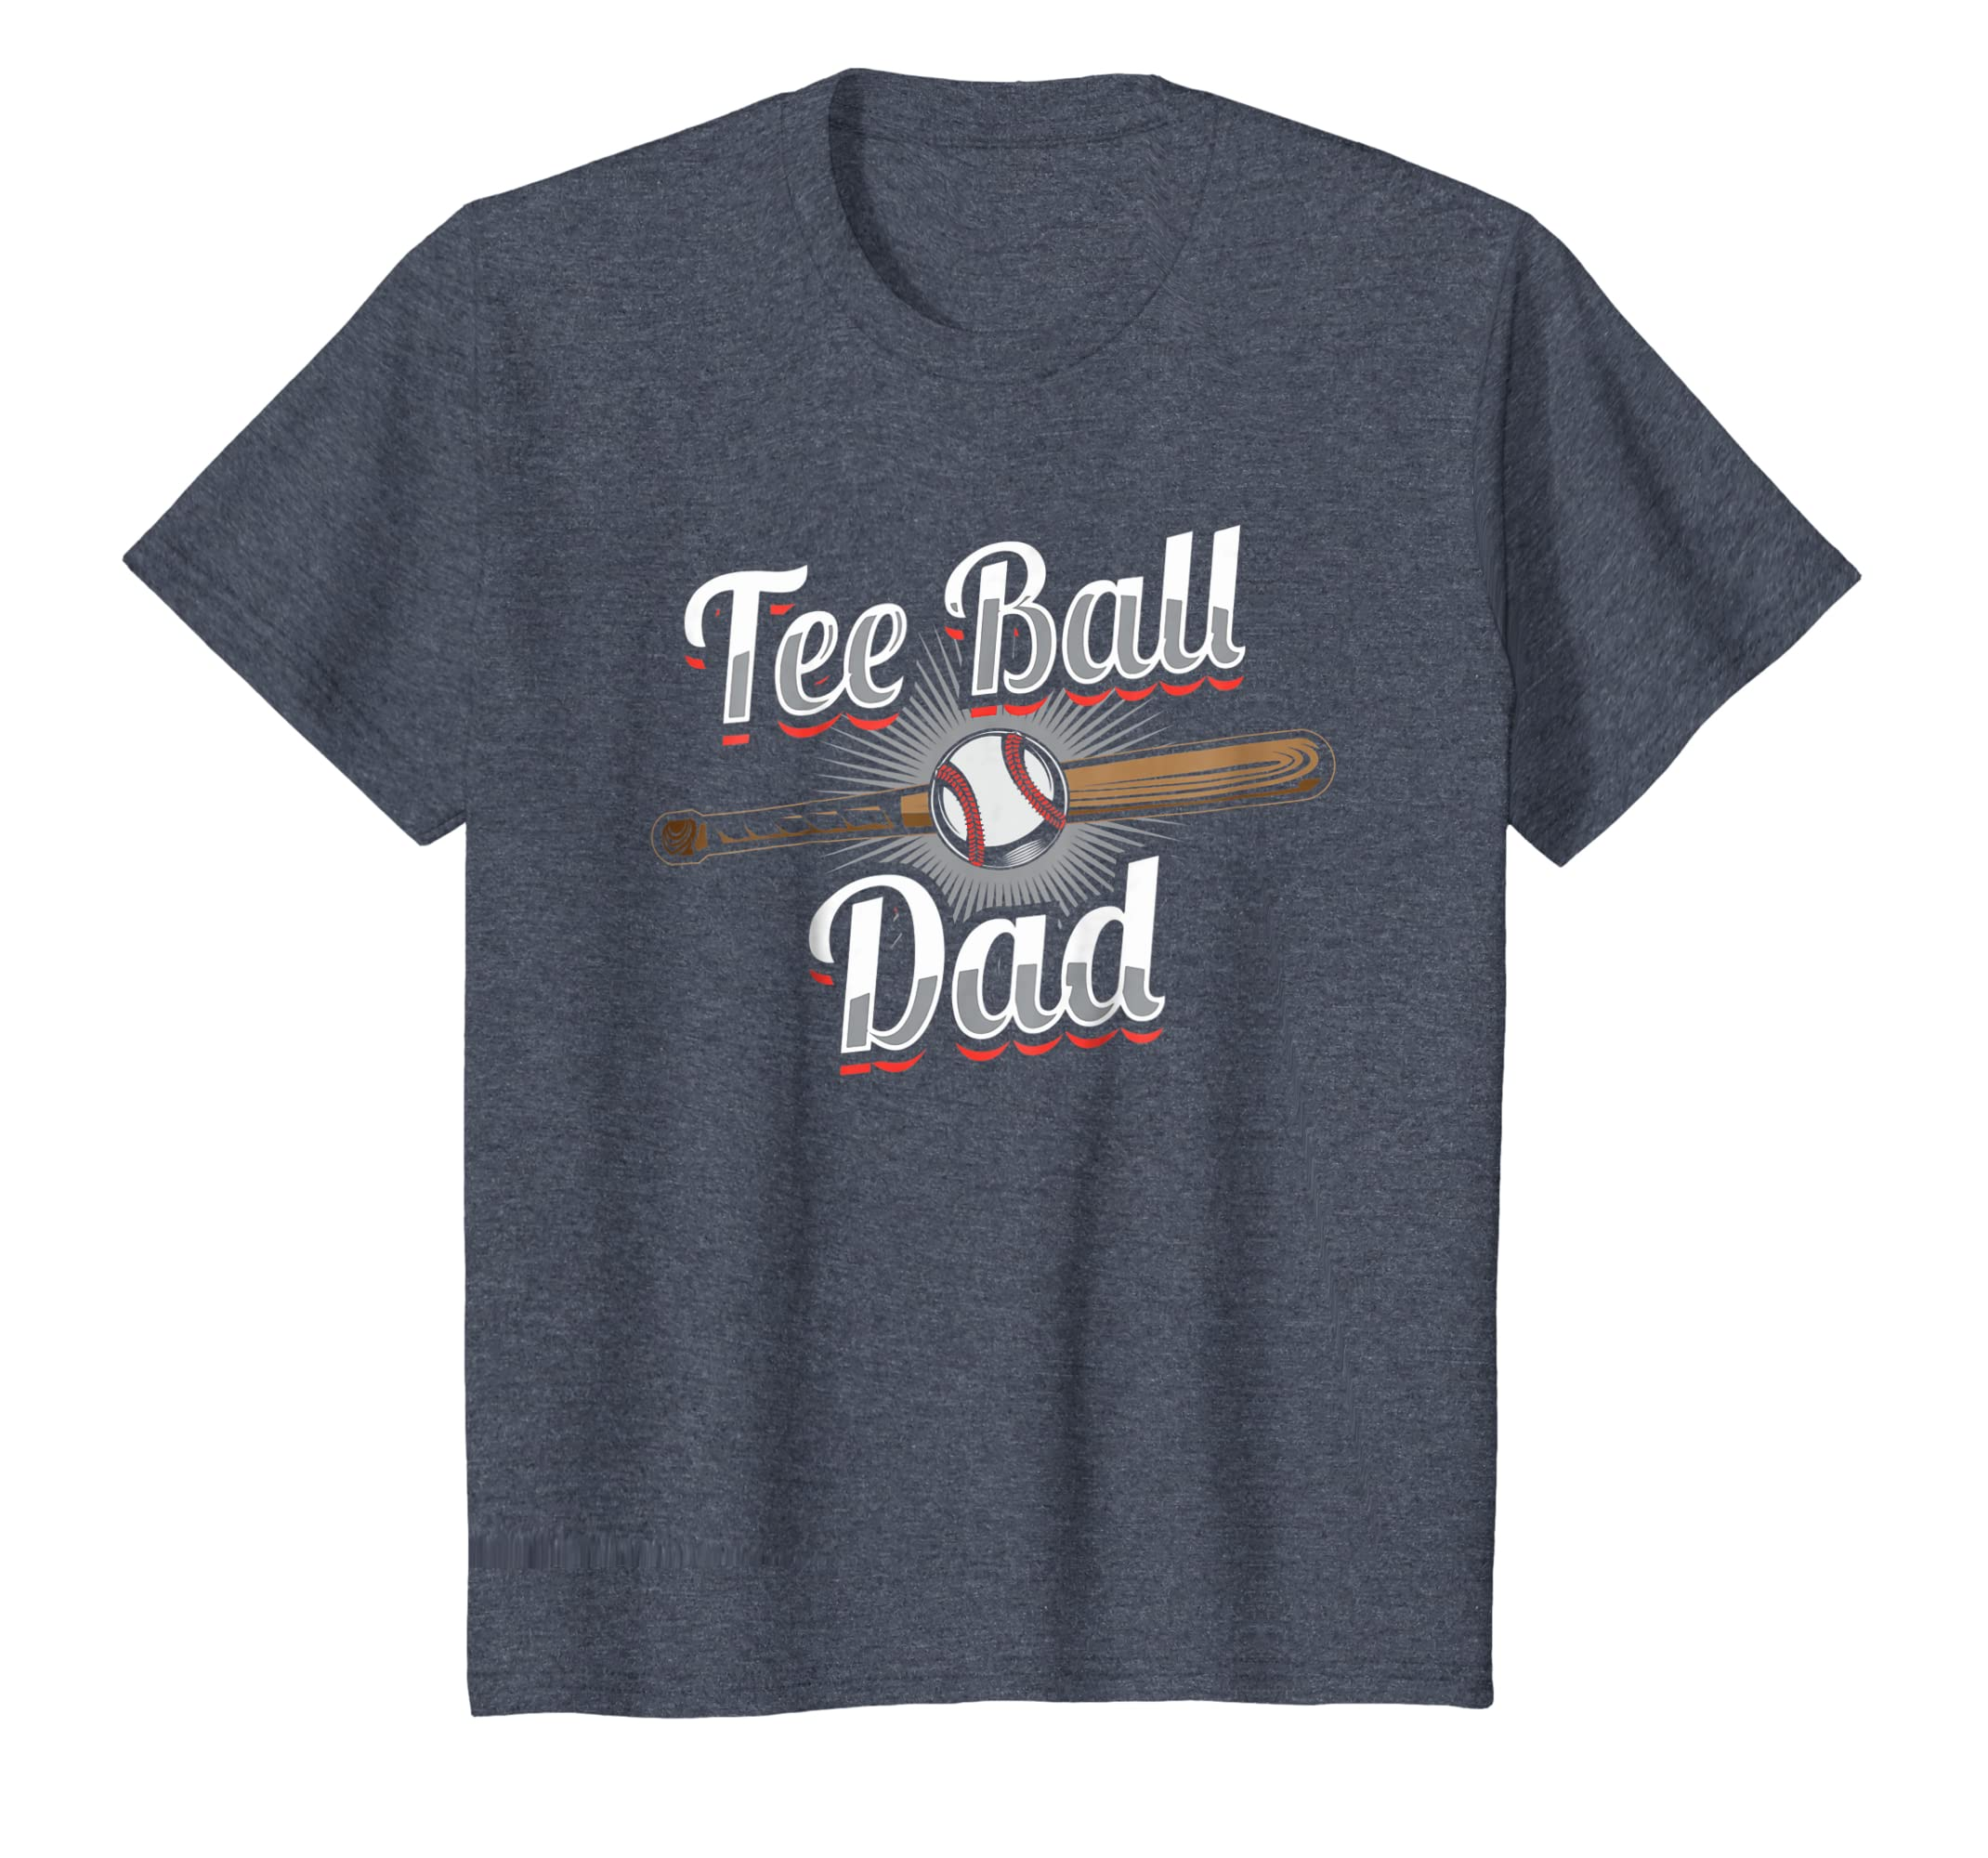 b1c09af67 Amazon.com: T-Ball Dad T-Shirt | Tee Ball Fathers Day Baseball Gift:  Clothing